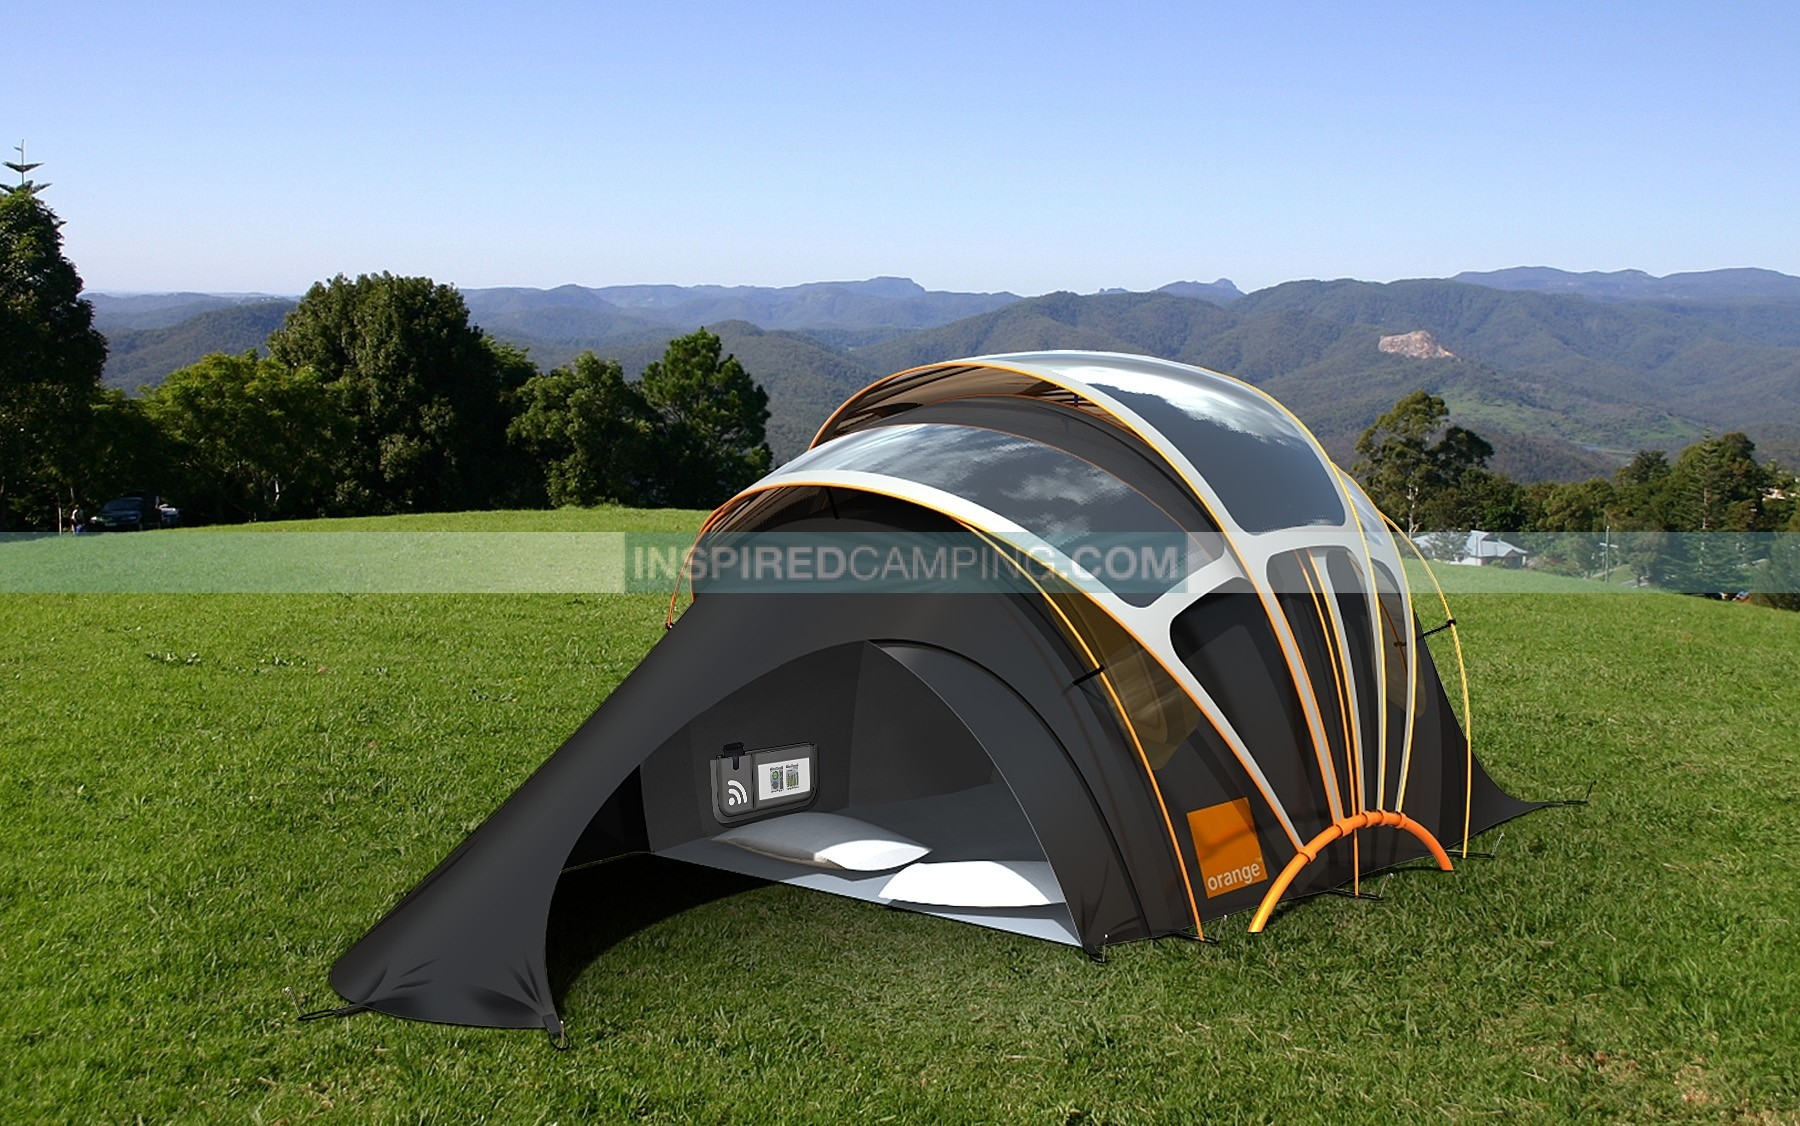 Solar Powered Tent - Cool Camping & Glamping Site